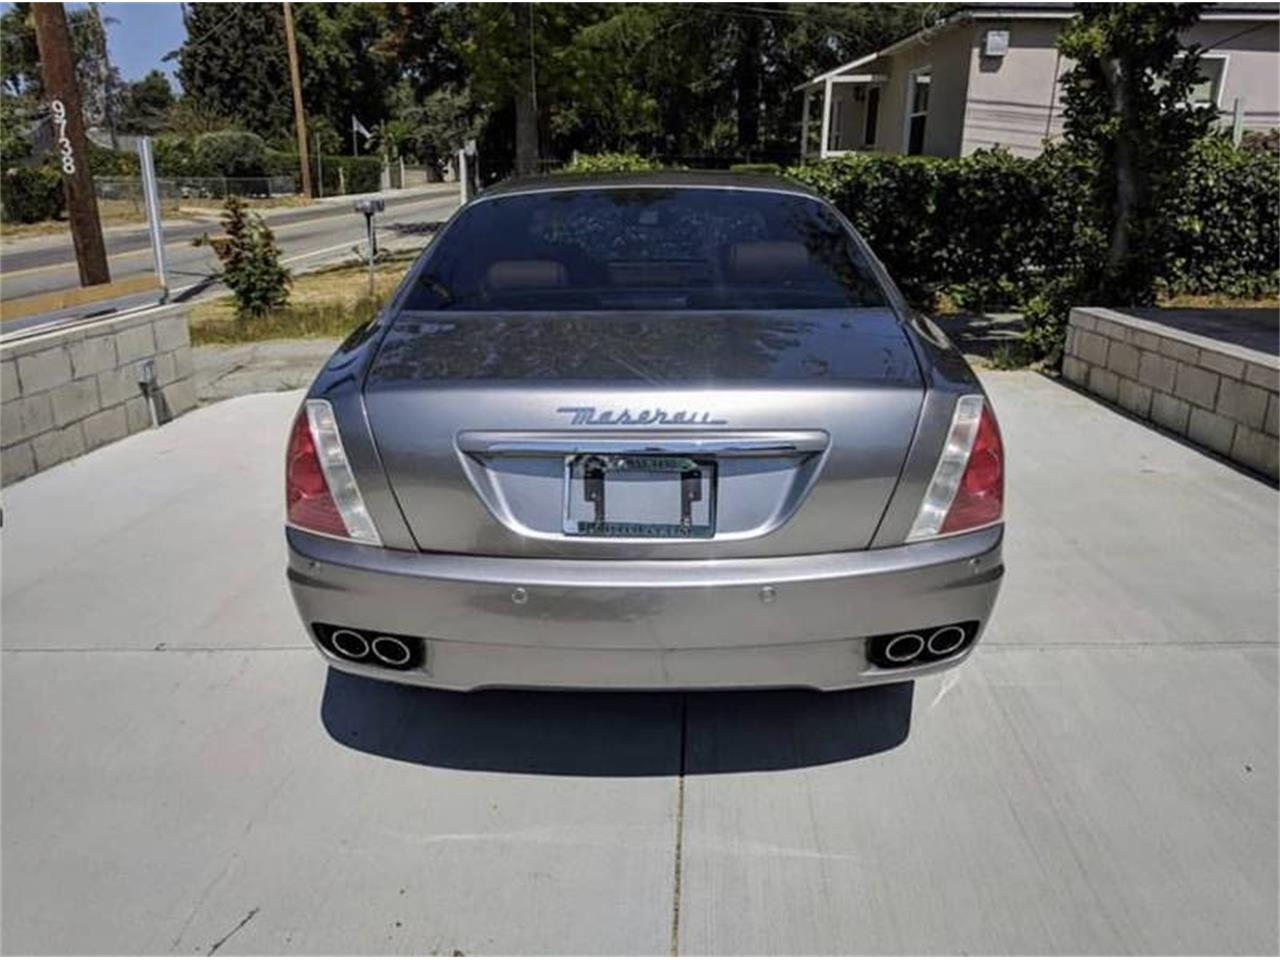 2007 Maserati Quattroporte for sale in Long Island, NY – photo 4